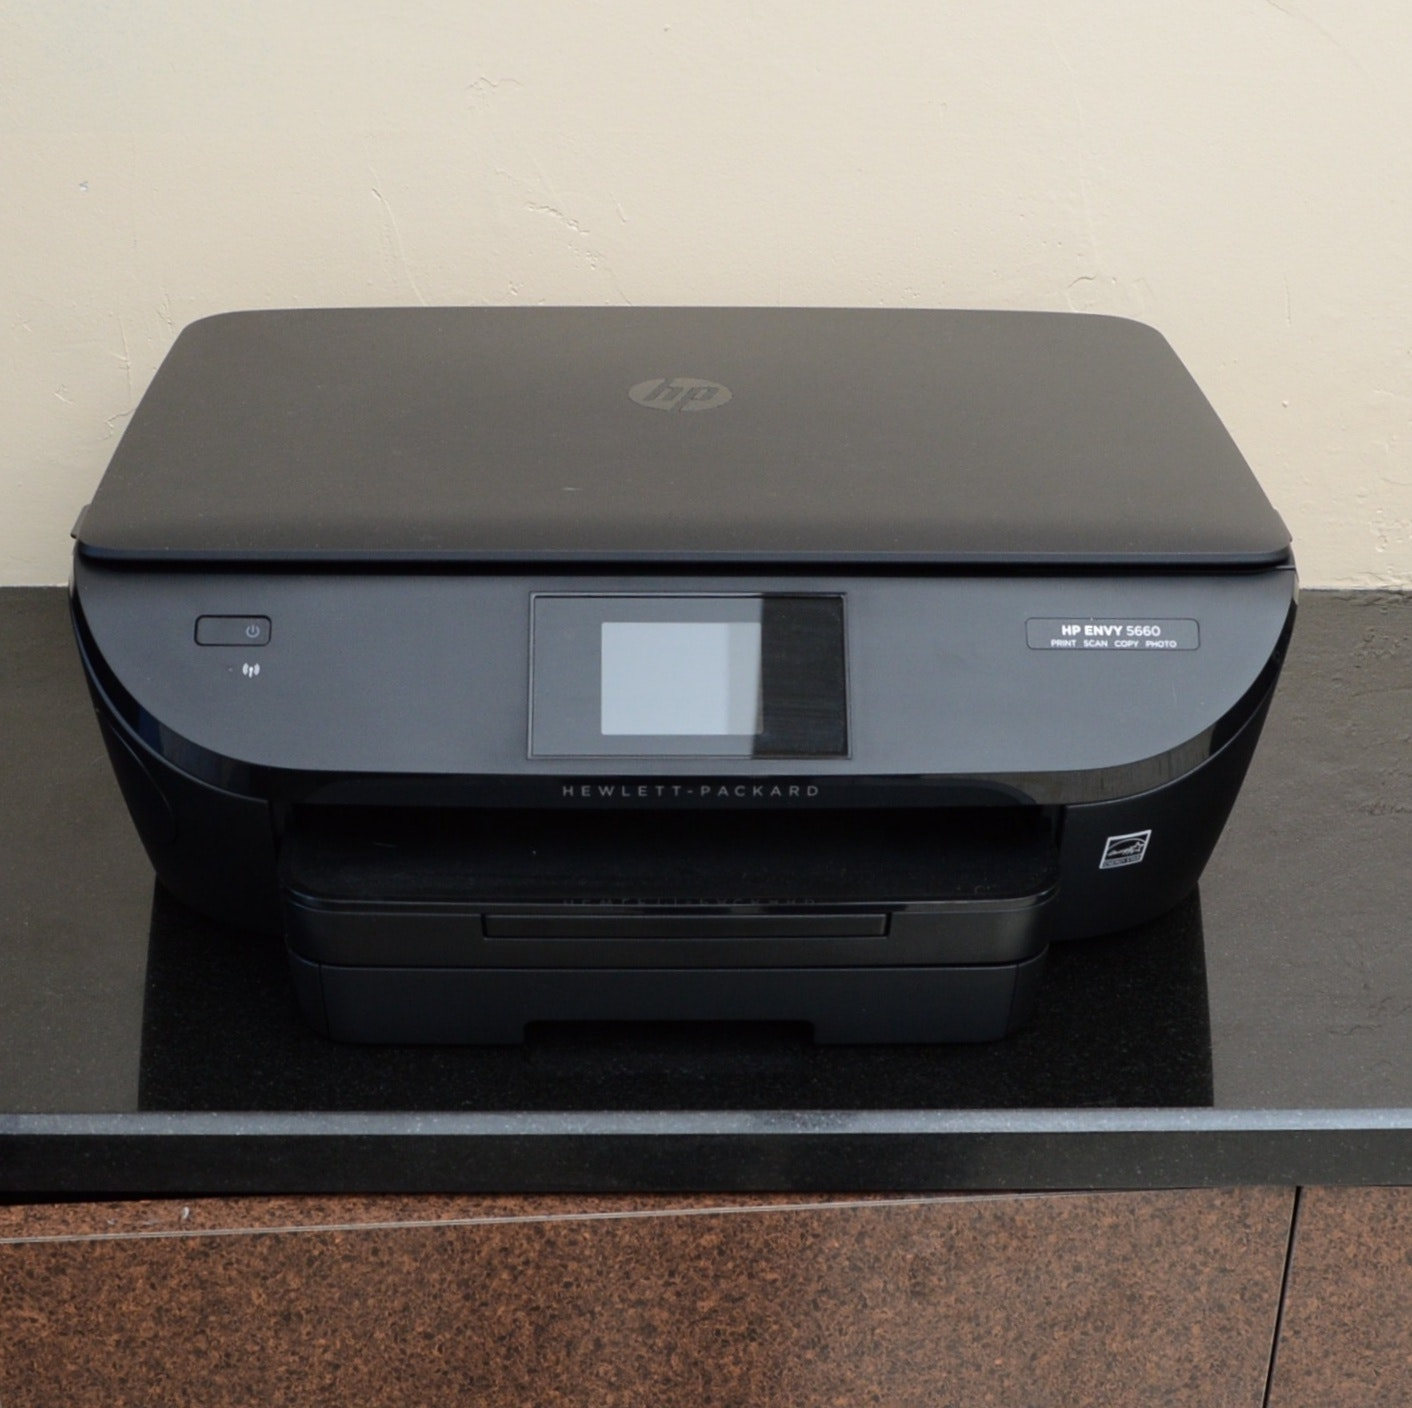 Hp Envy 5660 Four In One Printer